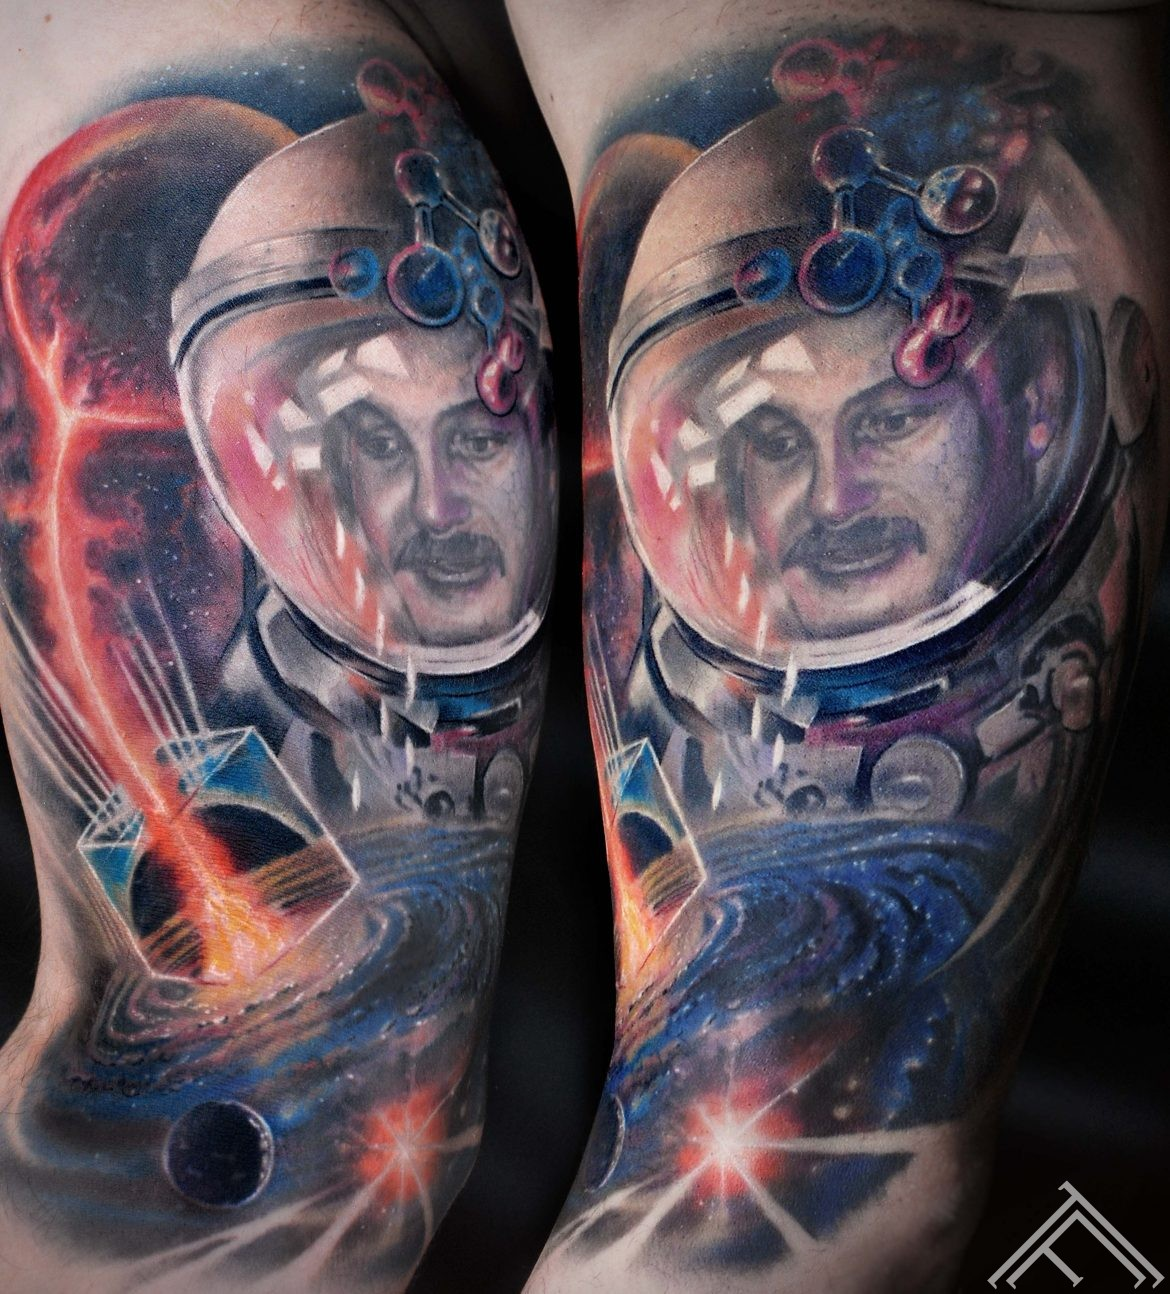 spaceman-galaxy-tattoo-tattoofrequency-marispavlo-art-healed-tetovejums-riga